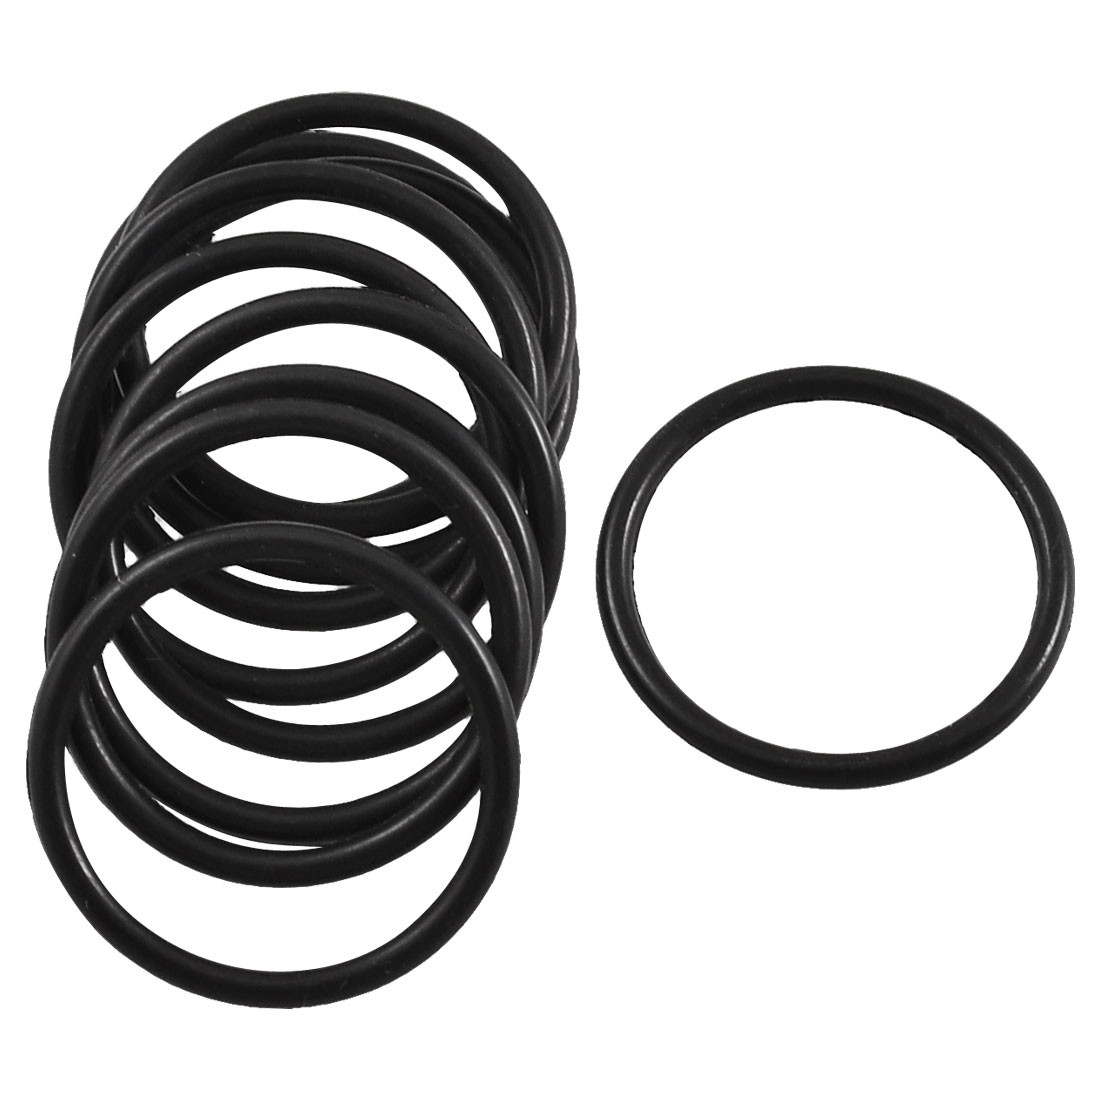 10 Pcs Black Rubber O Shaped Oil Seal Ring Sealing Washer 19mm x 1.8mm